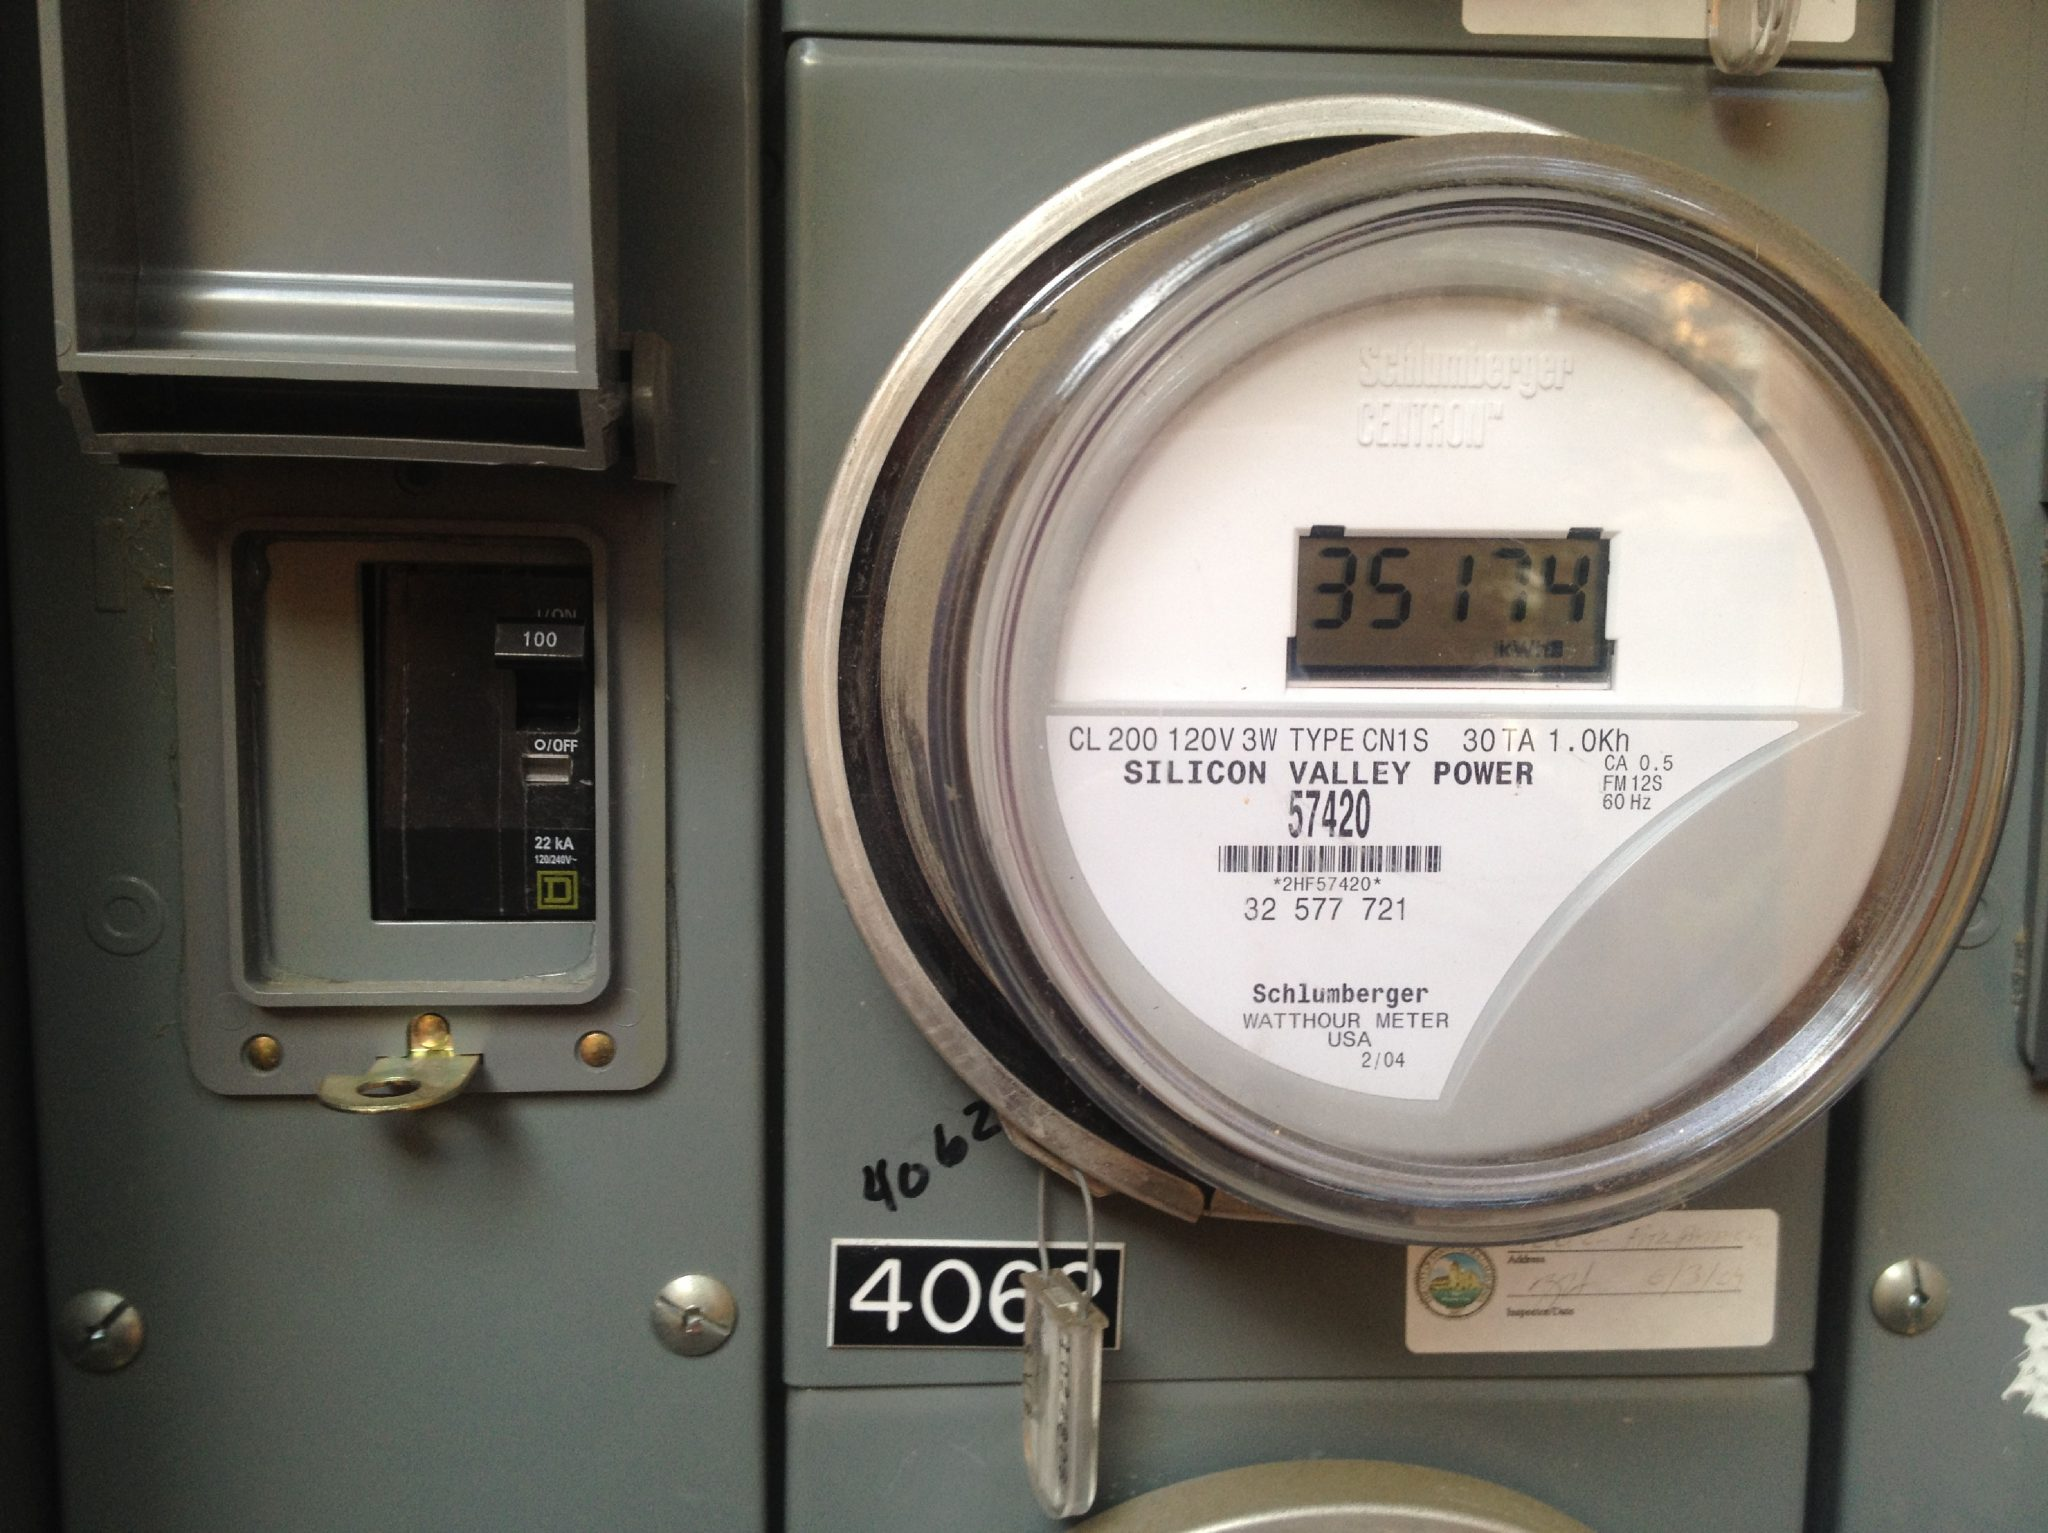 Electrical Panel Upgrades & Repairs: San Jose, Santa Clara on replace electrical switch, replace generator panel, moving electrical panel, replace electrical panel breaker,